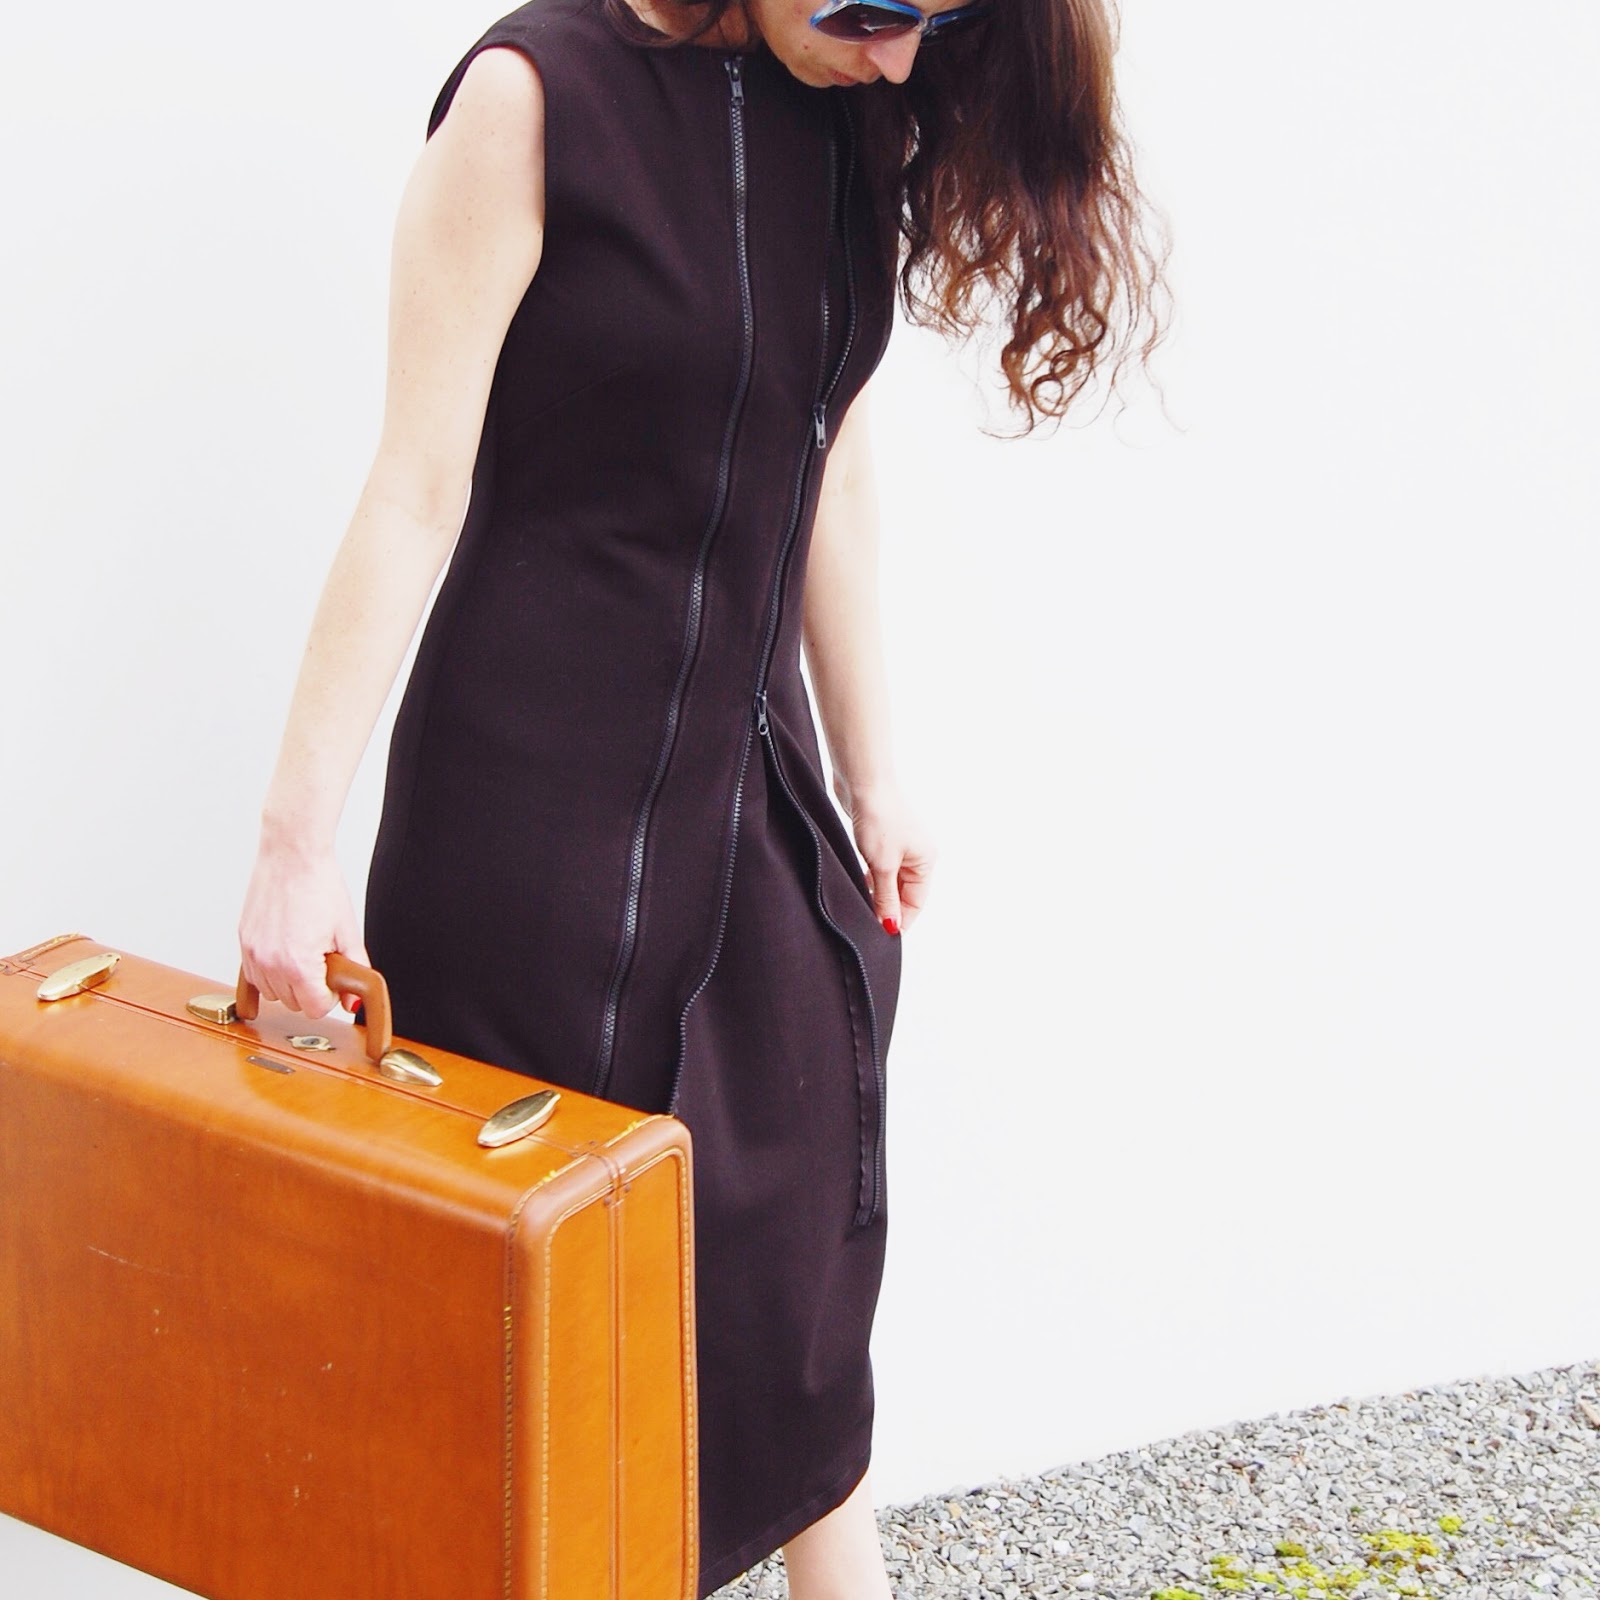 The Zipper Dress by Poppyseed: Engineered to Change with You